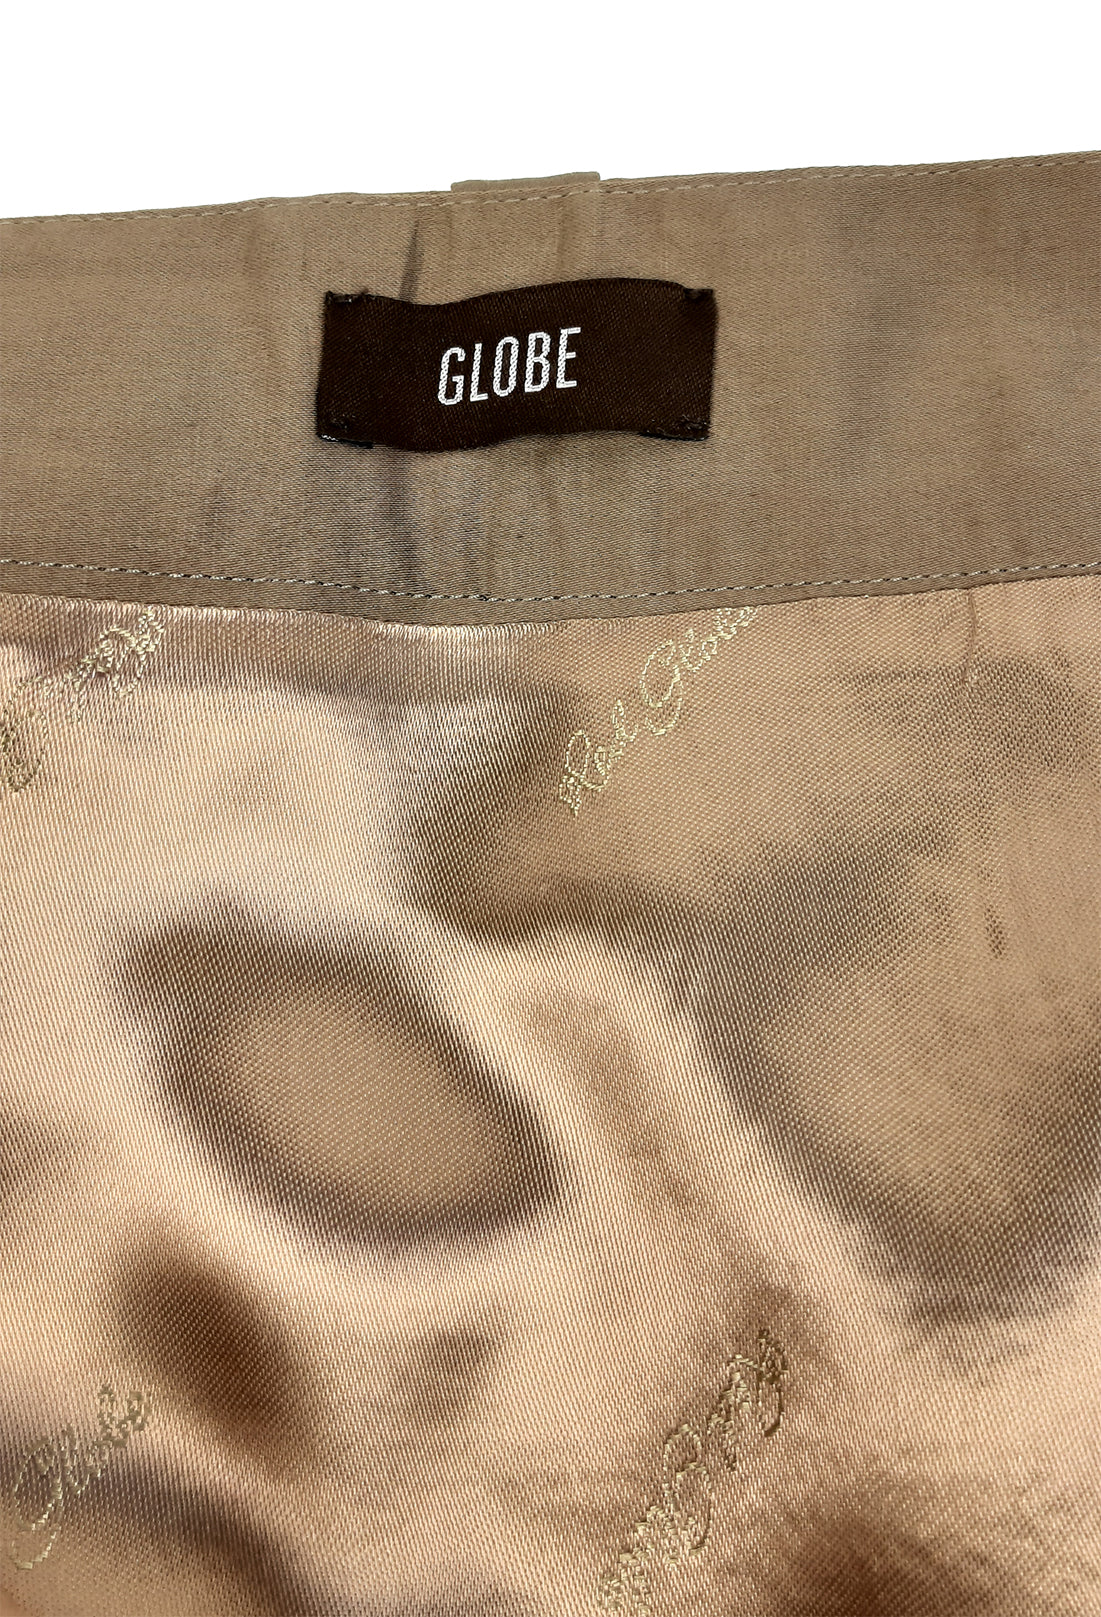 Globe Khaki Safari Skirt with Front Zip and Front Pockets Size 38(EU)